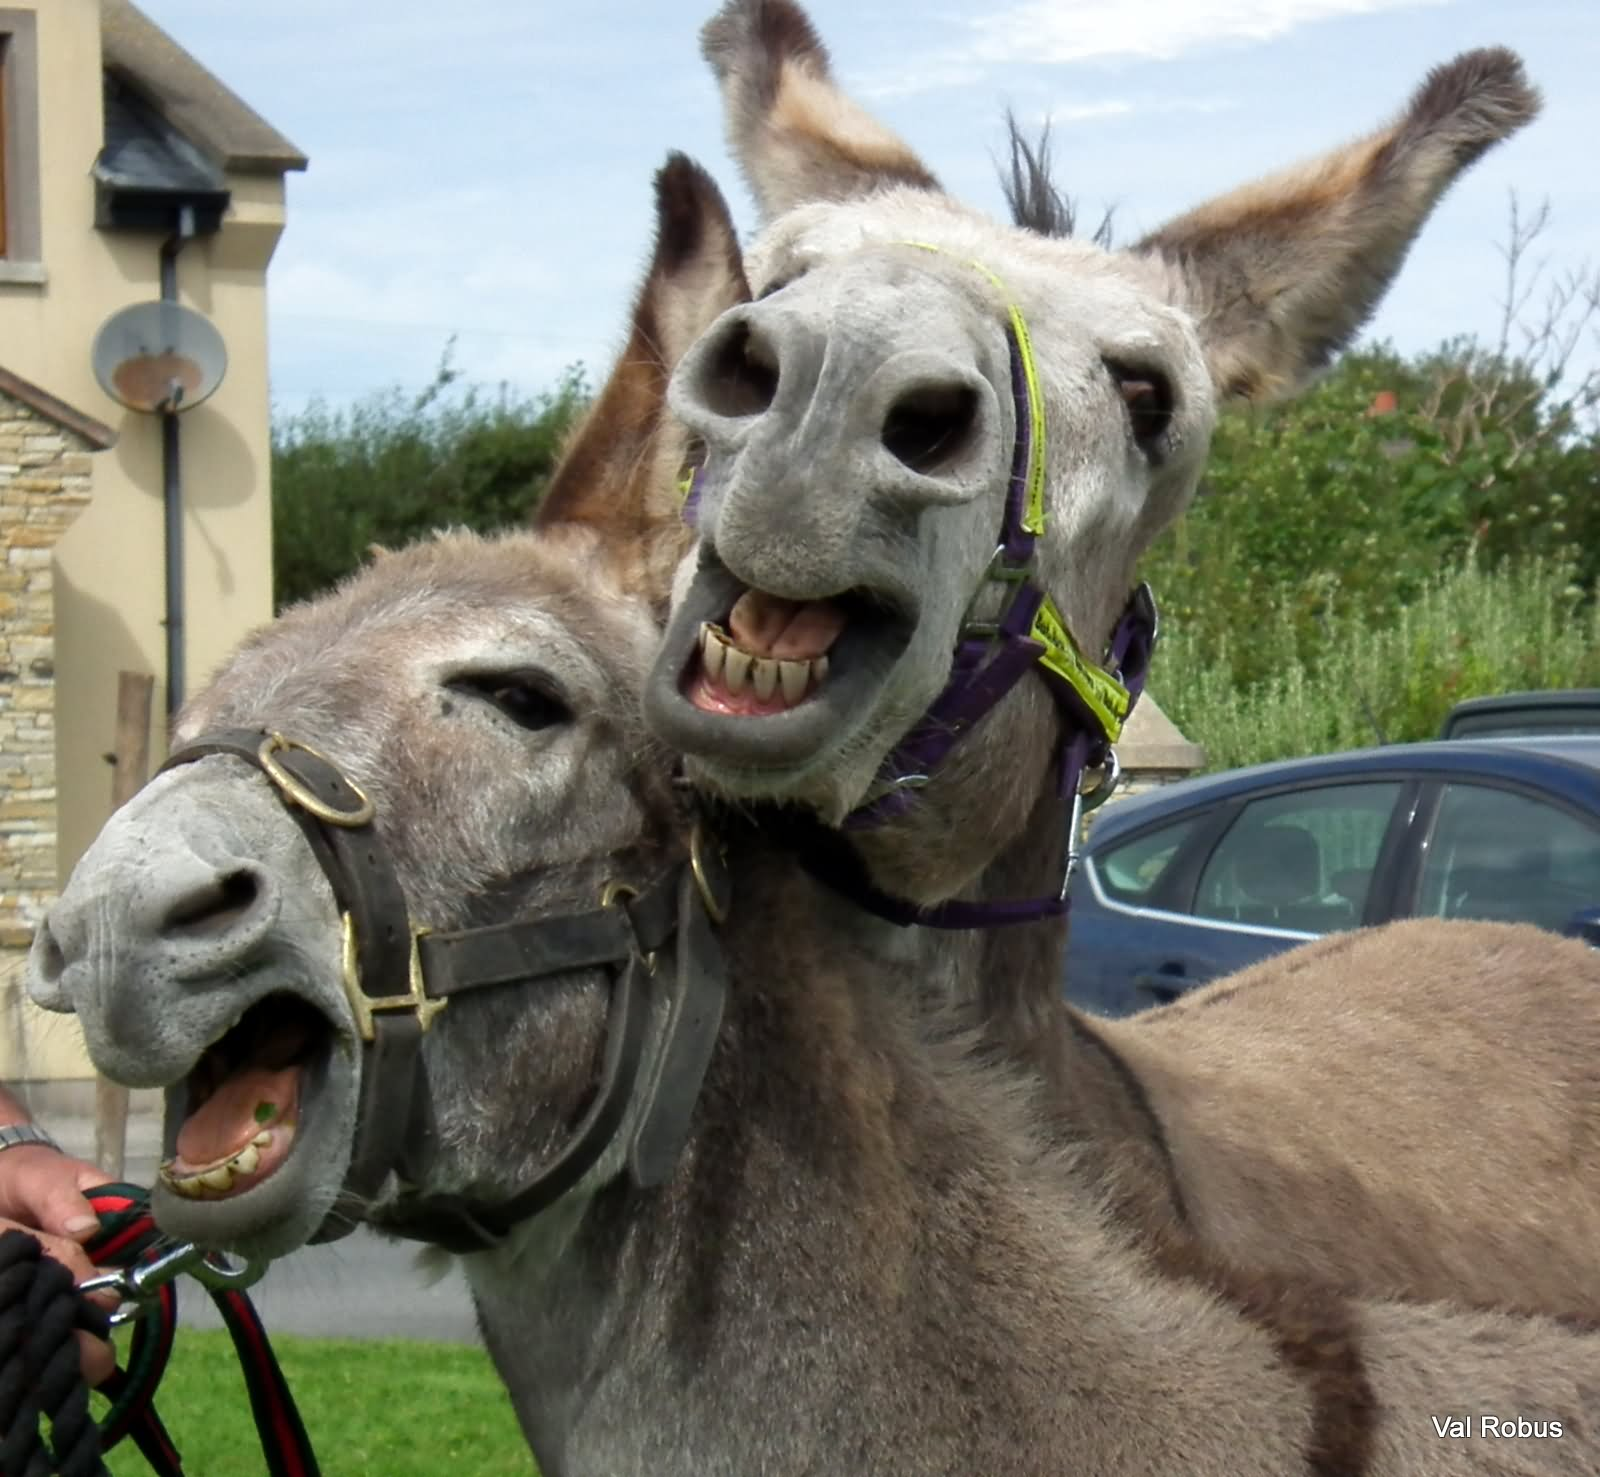 15 Most Funny Donkey Face Pictures That Will Make You Laugh - photo#27